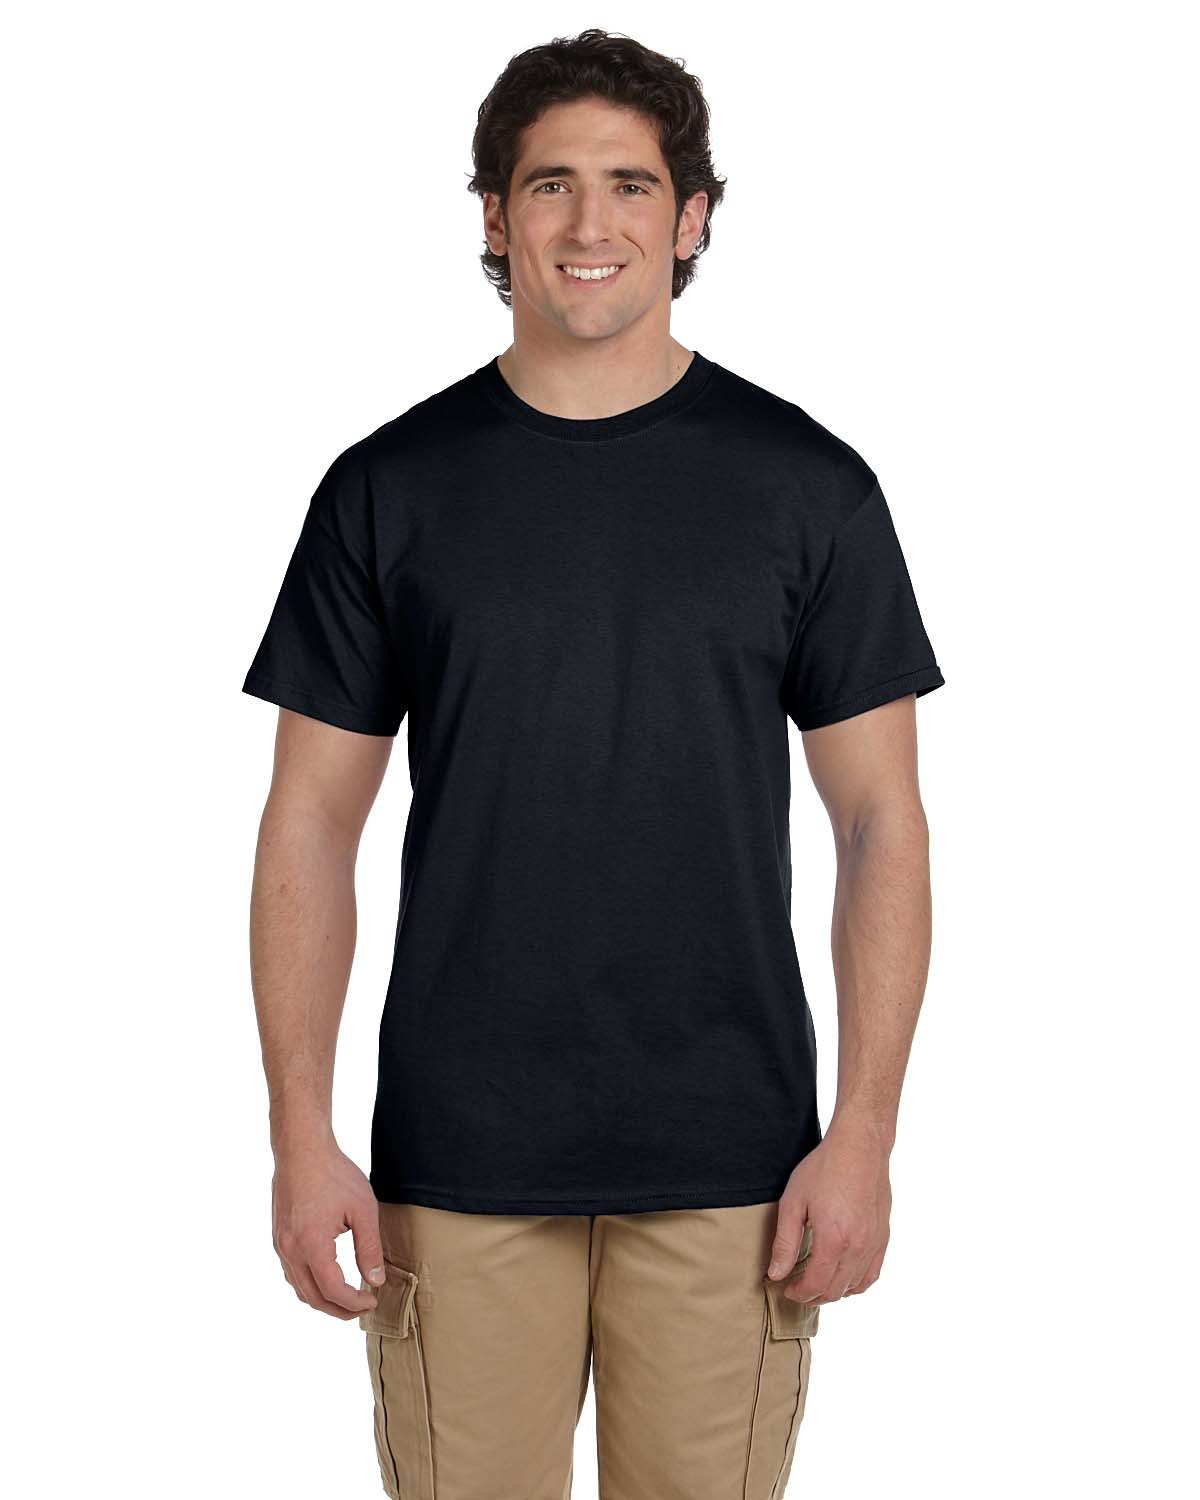 Fruit of the Loom Adult HD Cotton™ T-Shirt BLACK